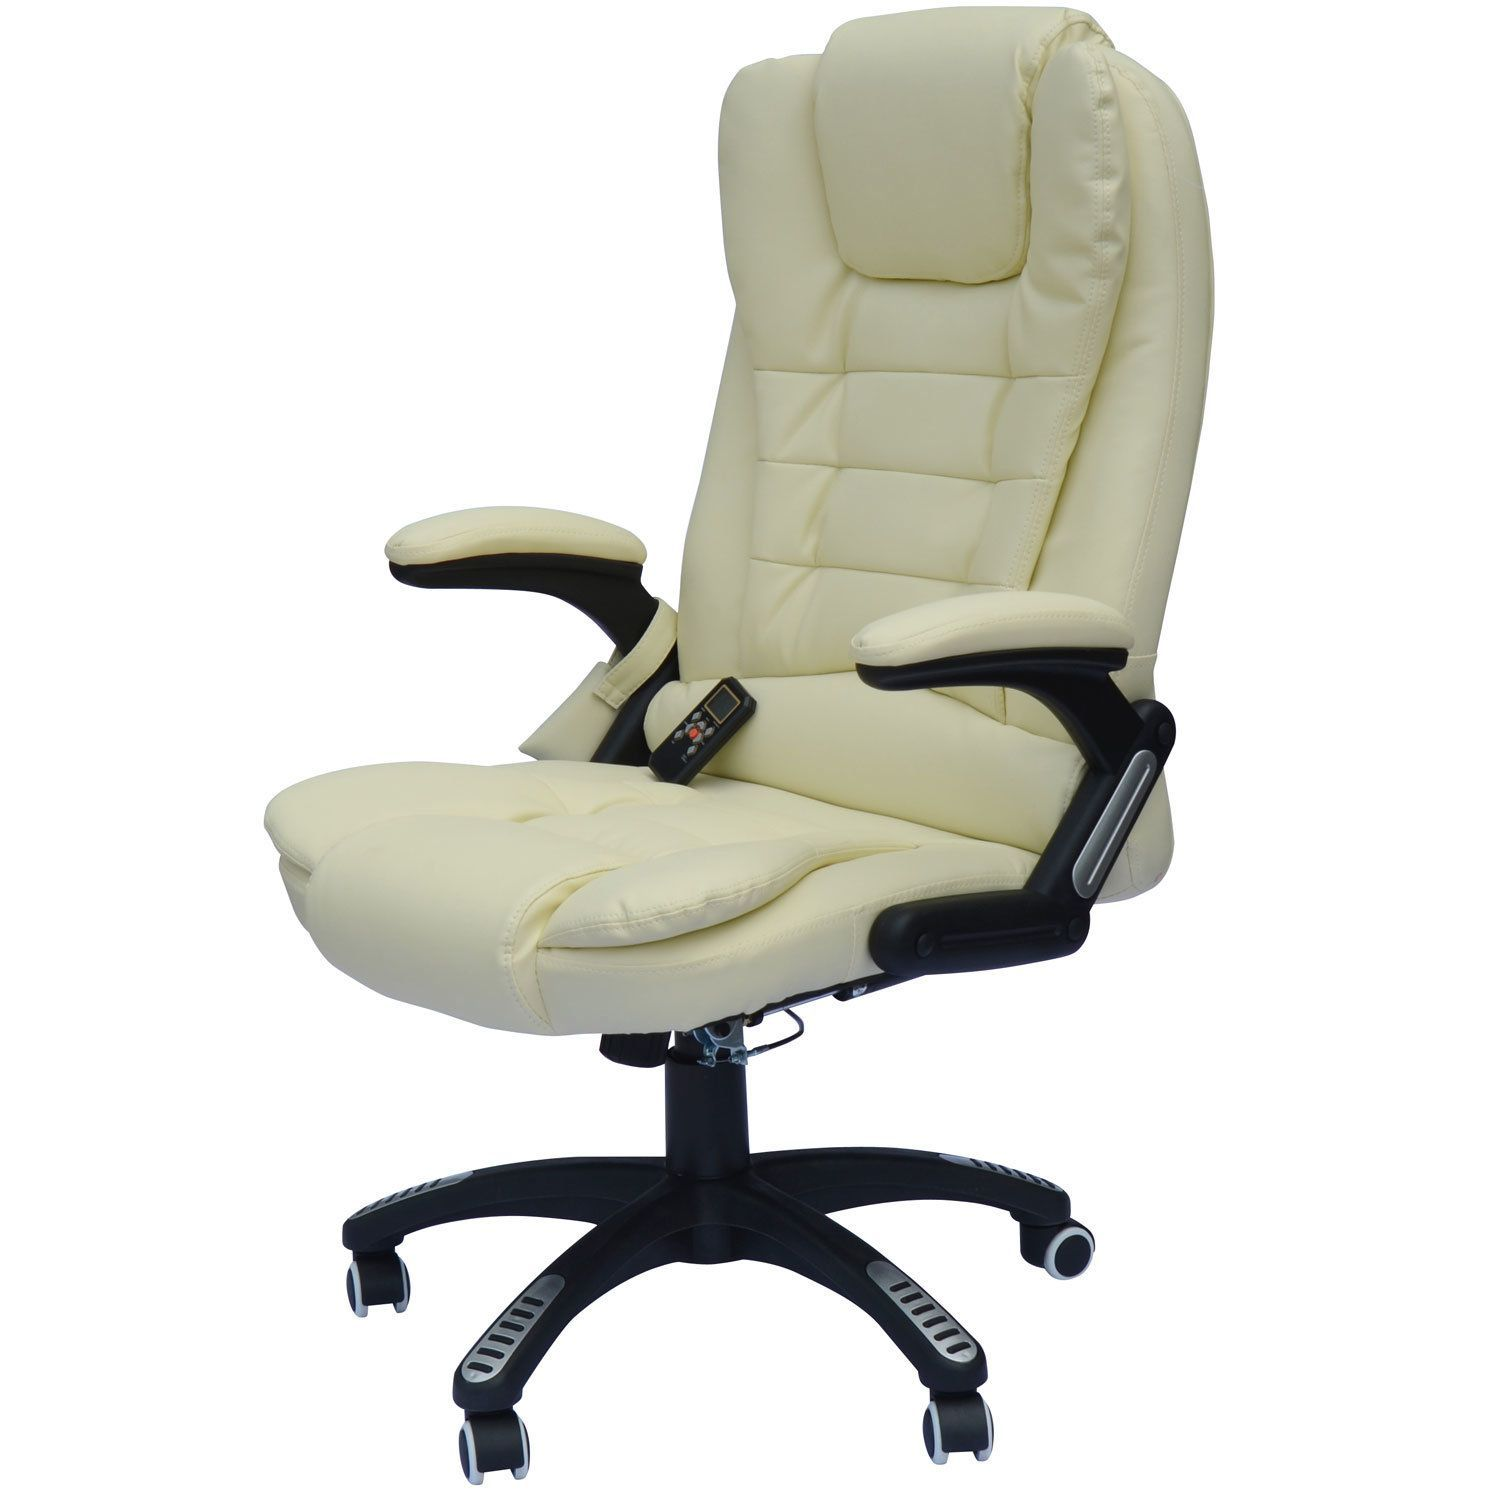 Luxury Heated Seat for Office Chair